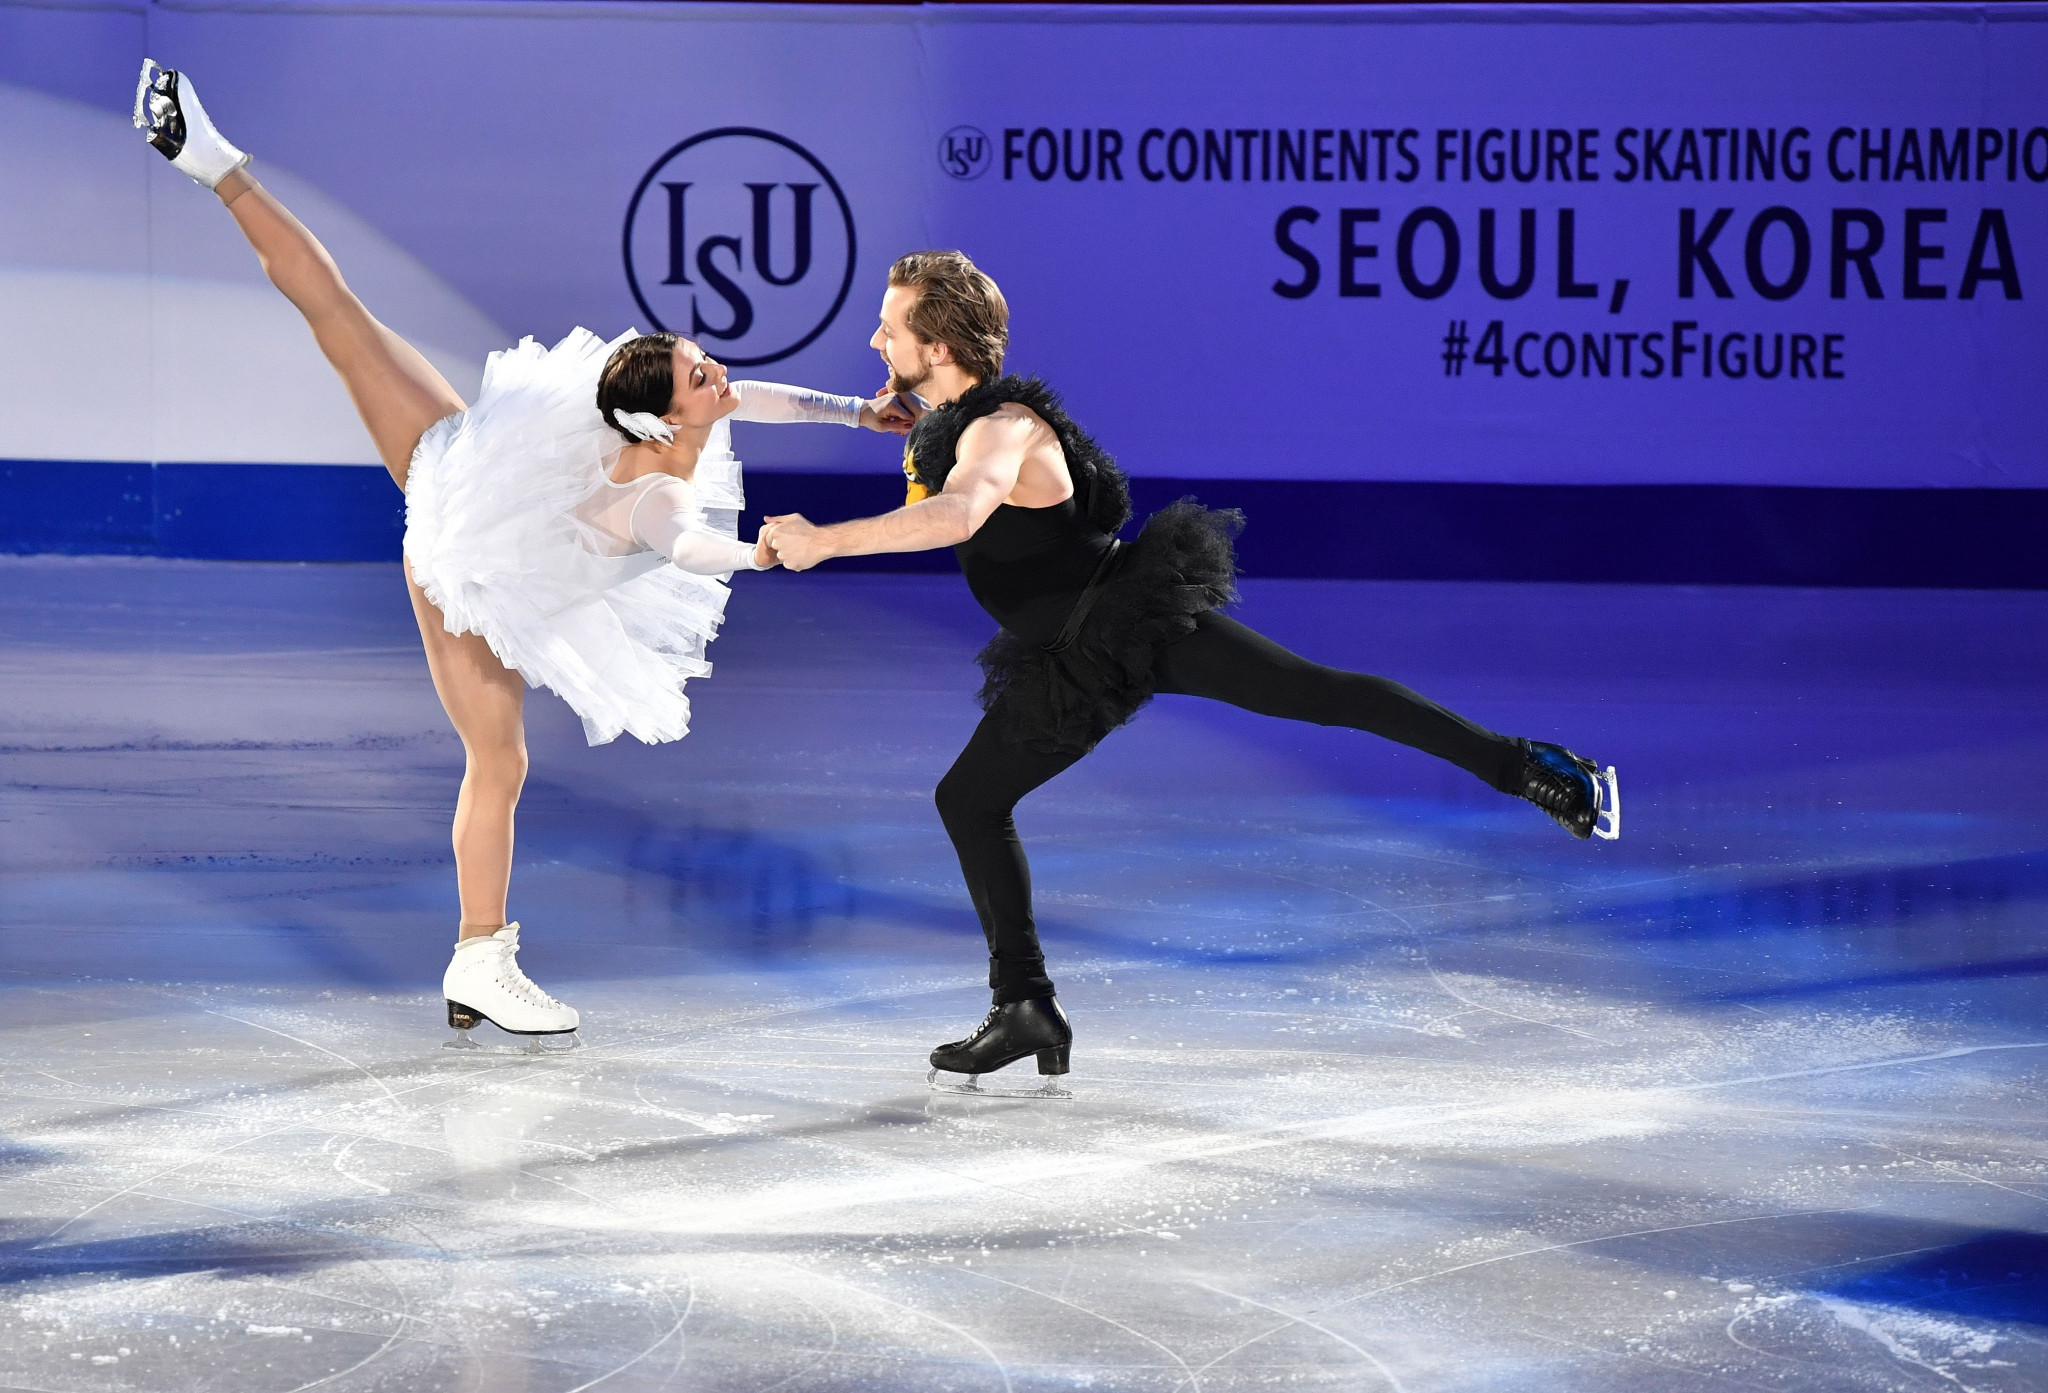 The Four Continents Figure Skating Championships was held in Seoul earlier this year ©Getty Images